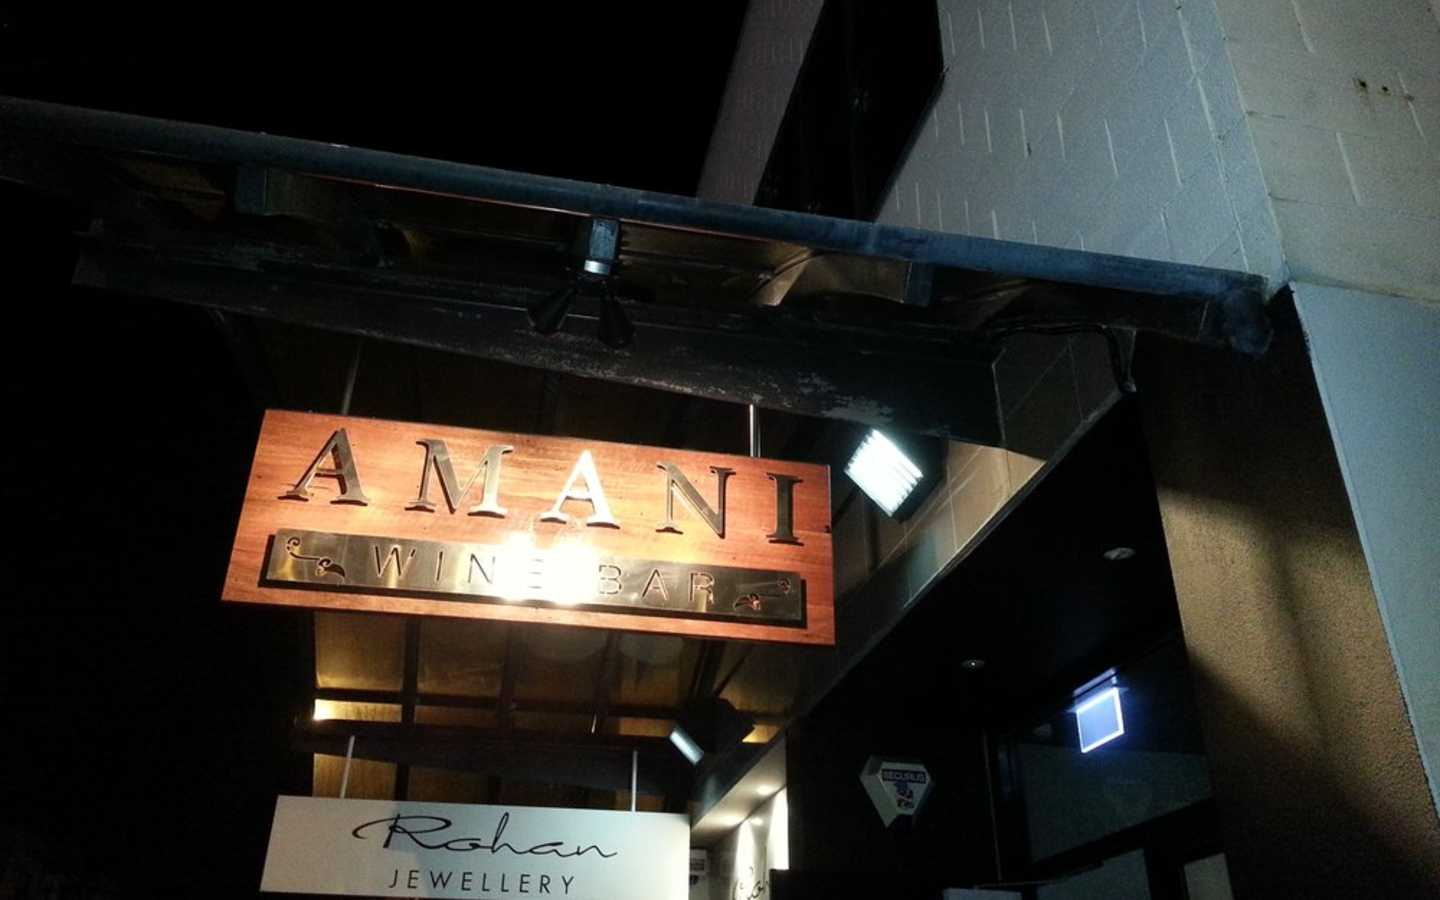 Amani Bar & Kitchen. Are you a Lay-dee?